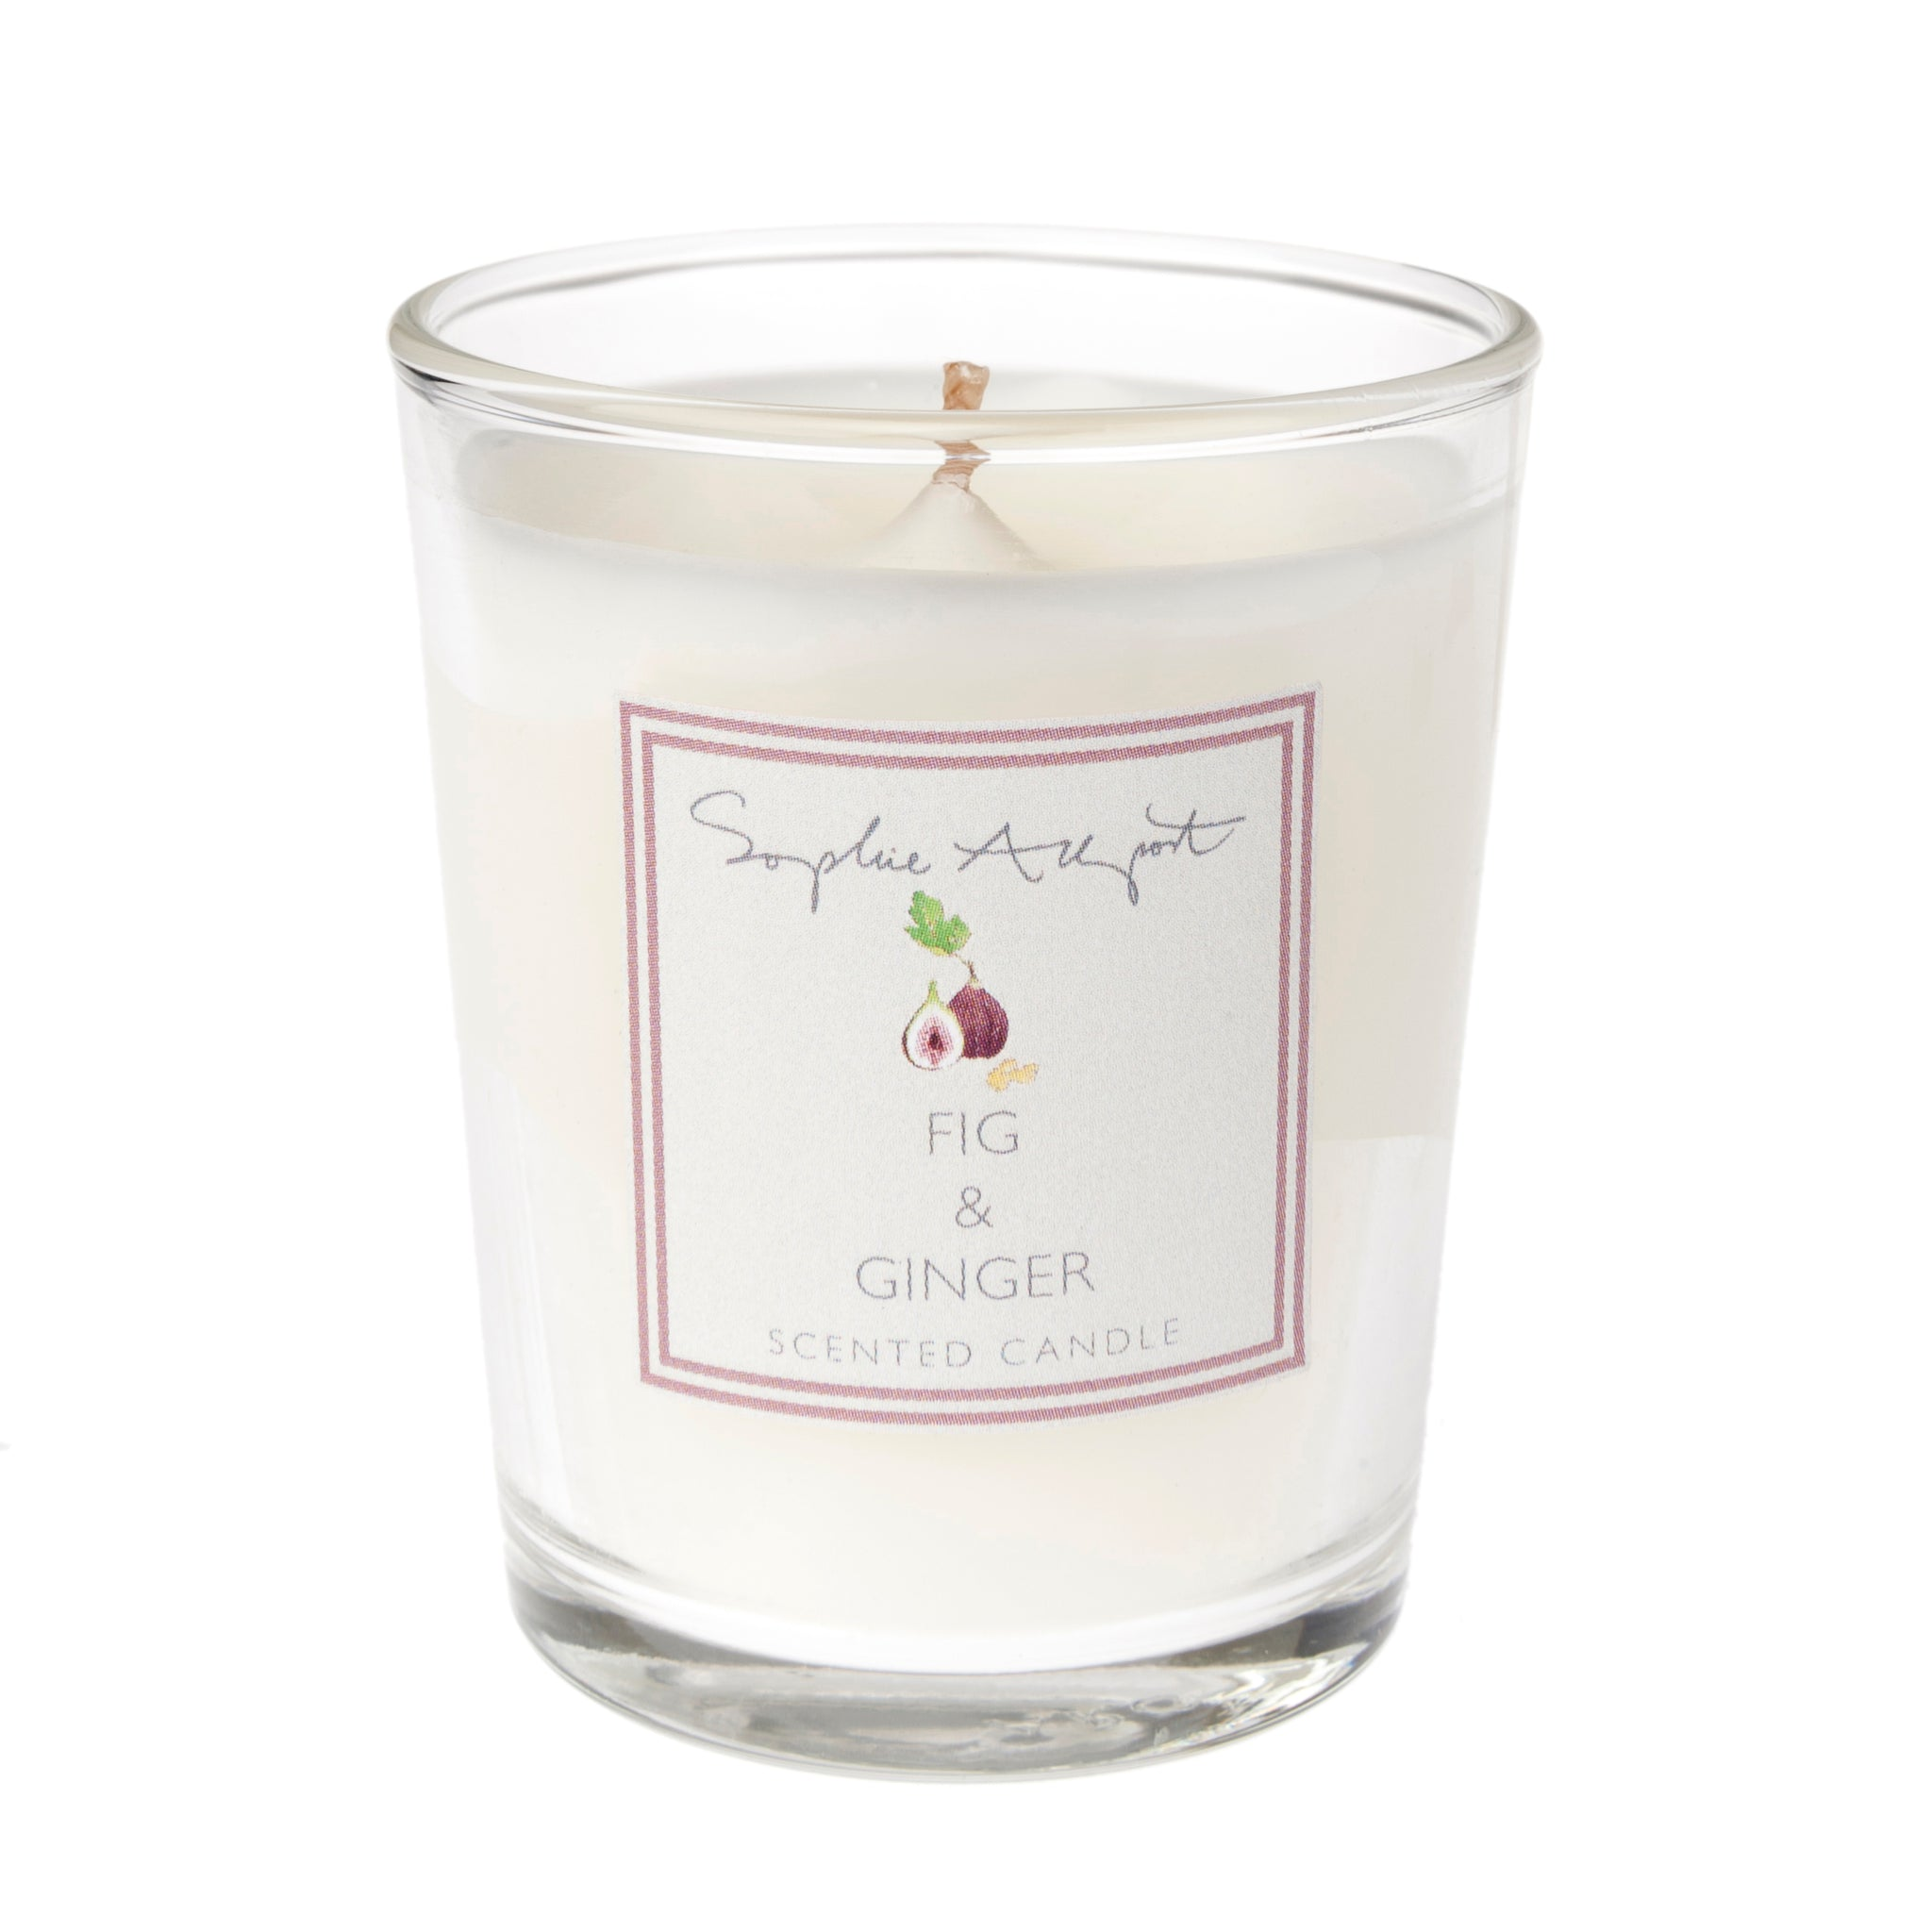 Fig & Ginger Scented Candle - 75g